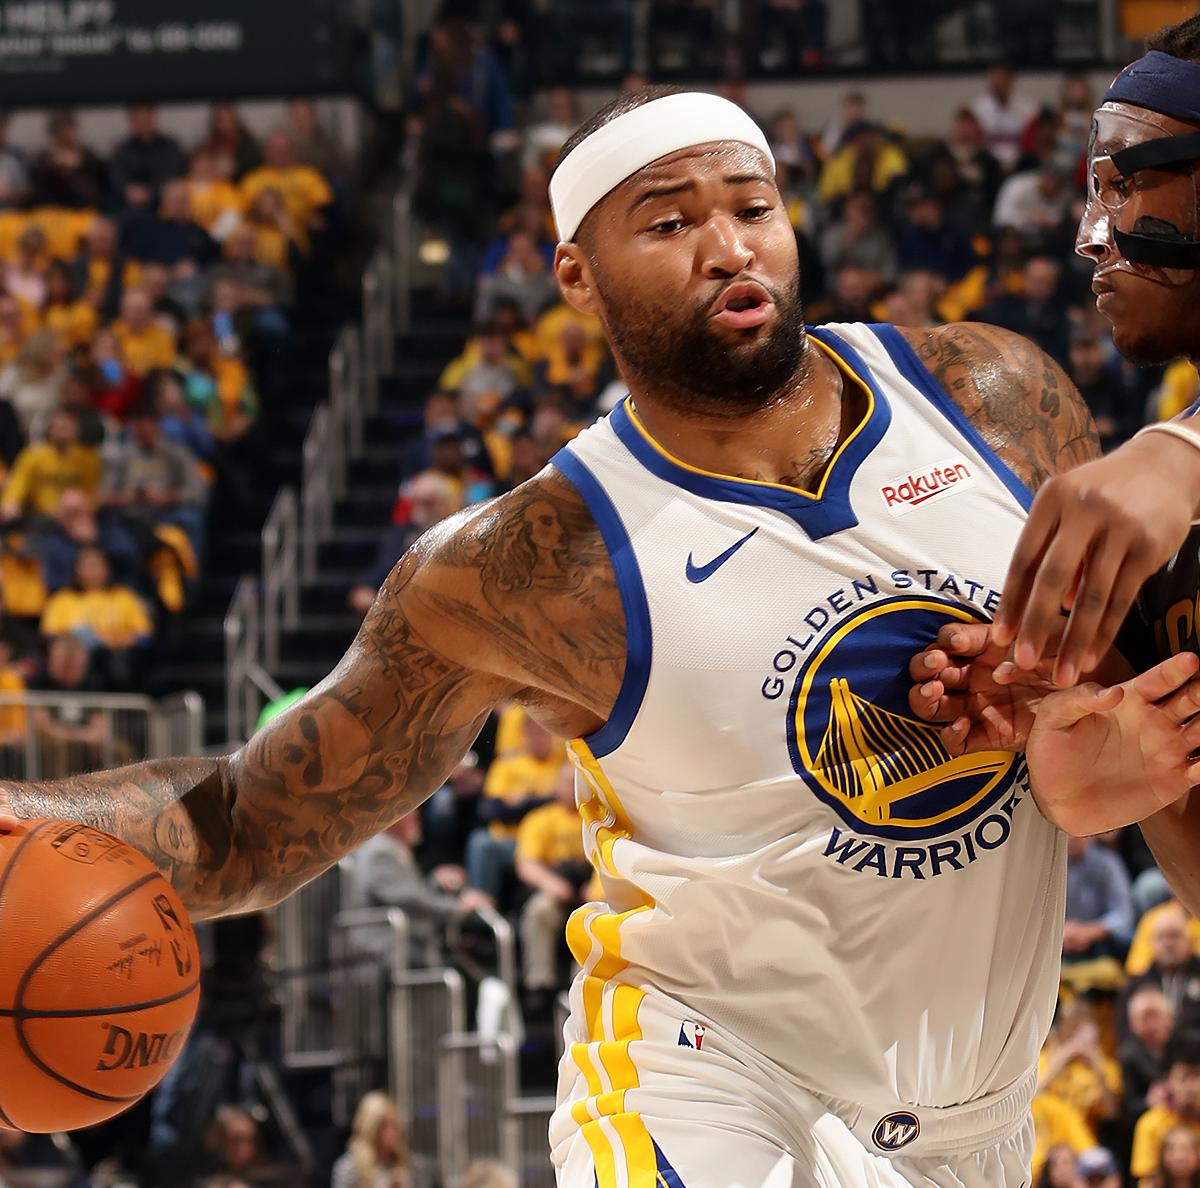 Warriors Come Out To Play Bleacher Report: NBA Power Rankings: DeMarcus Cousins And The Warriors